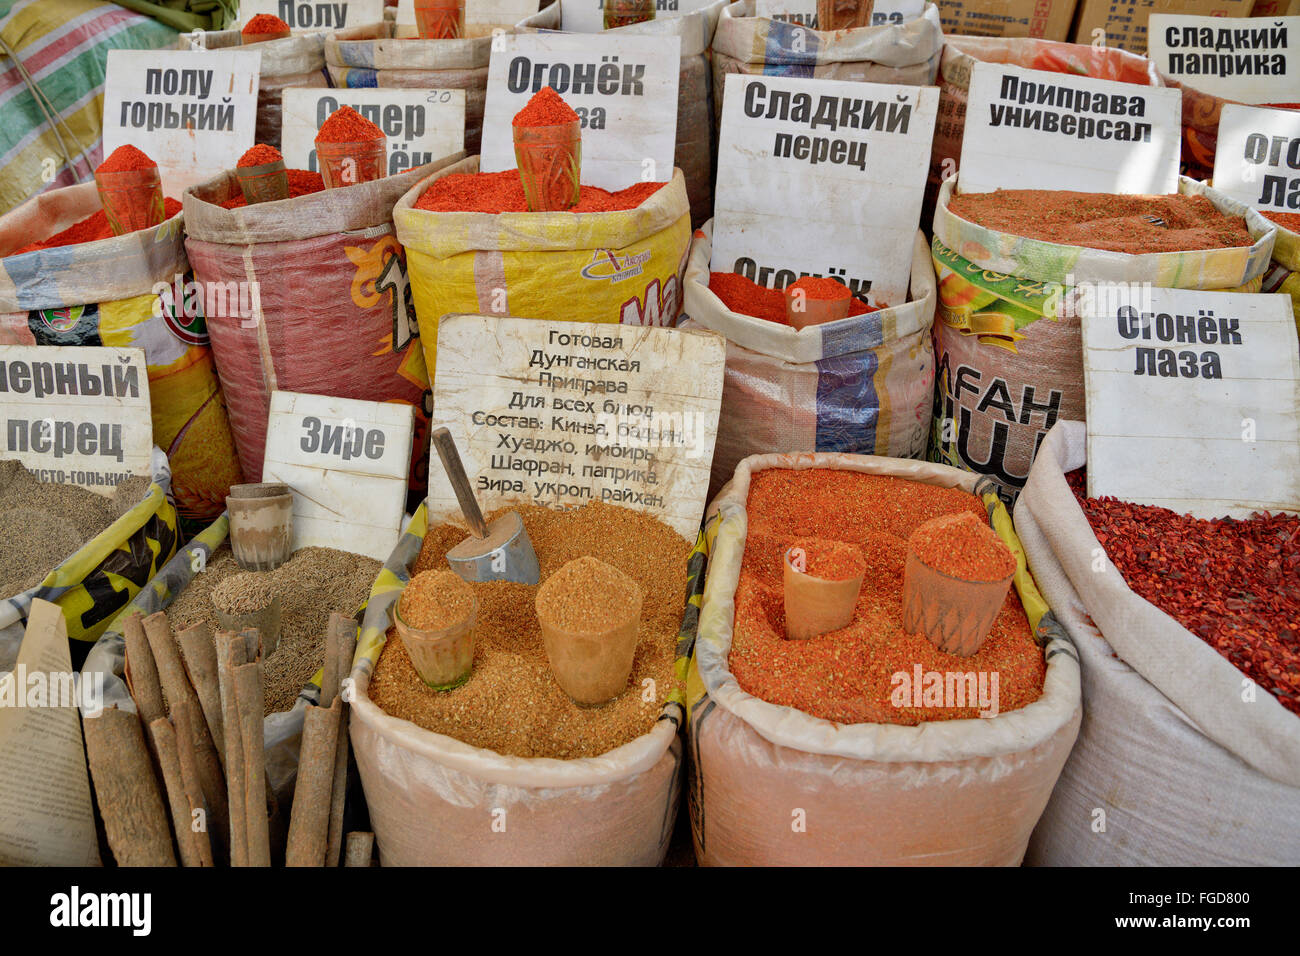 Spices for sale at Karokol market, Kyrgyzstan. - Stock Image